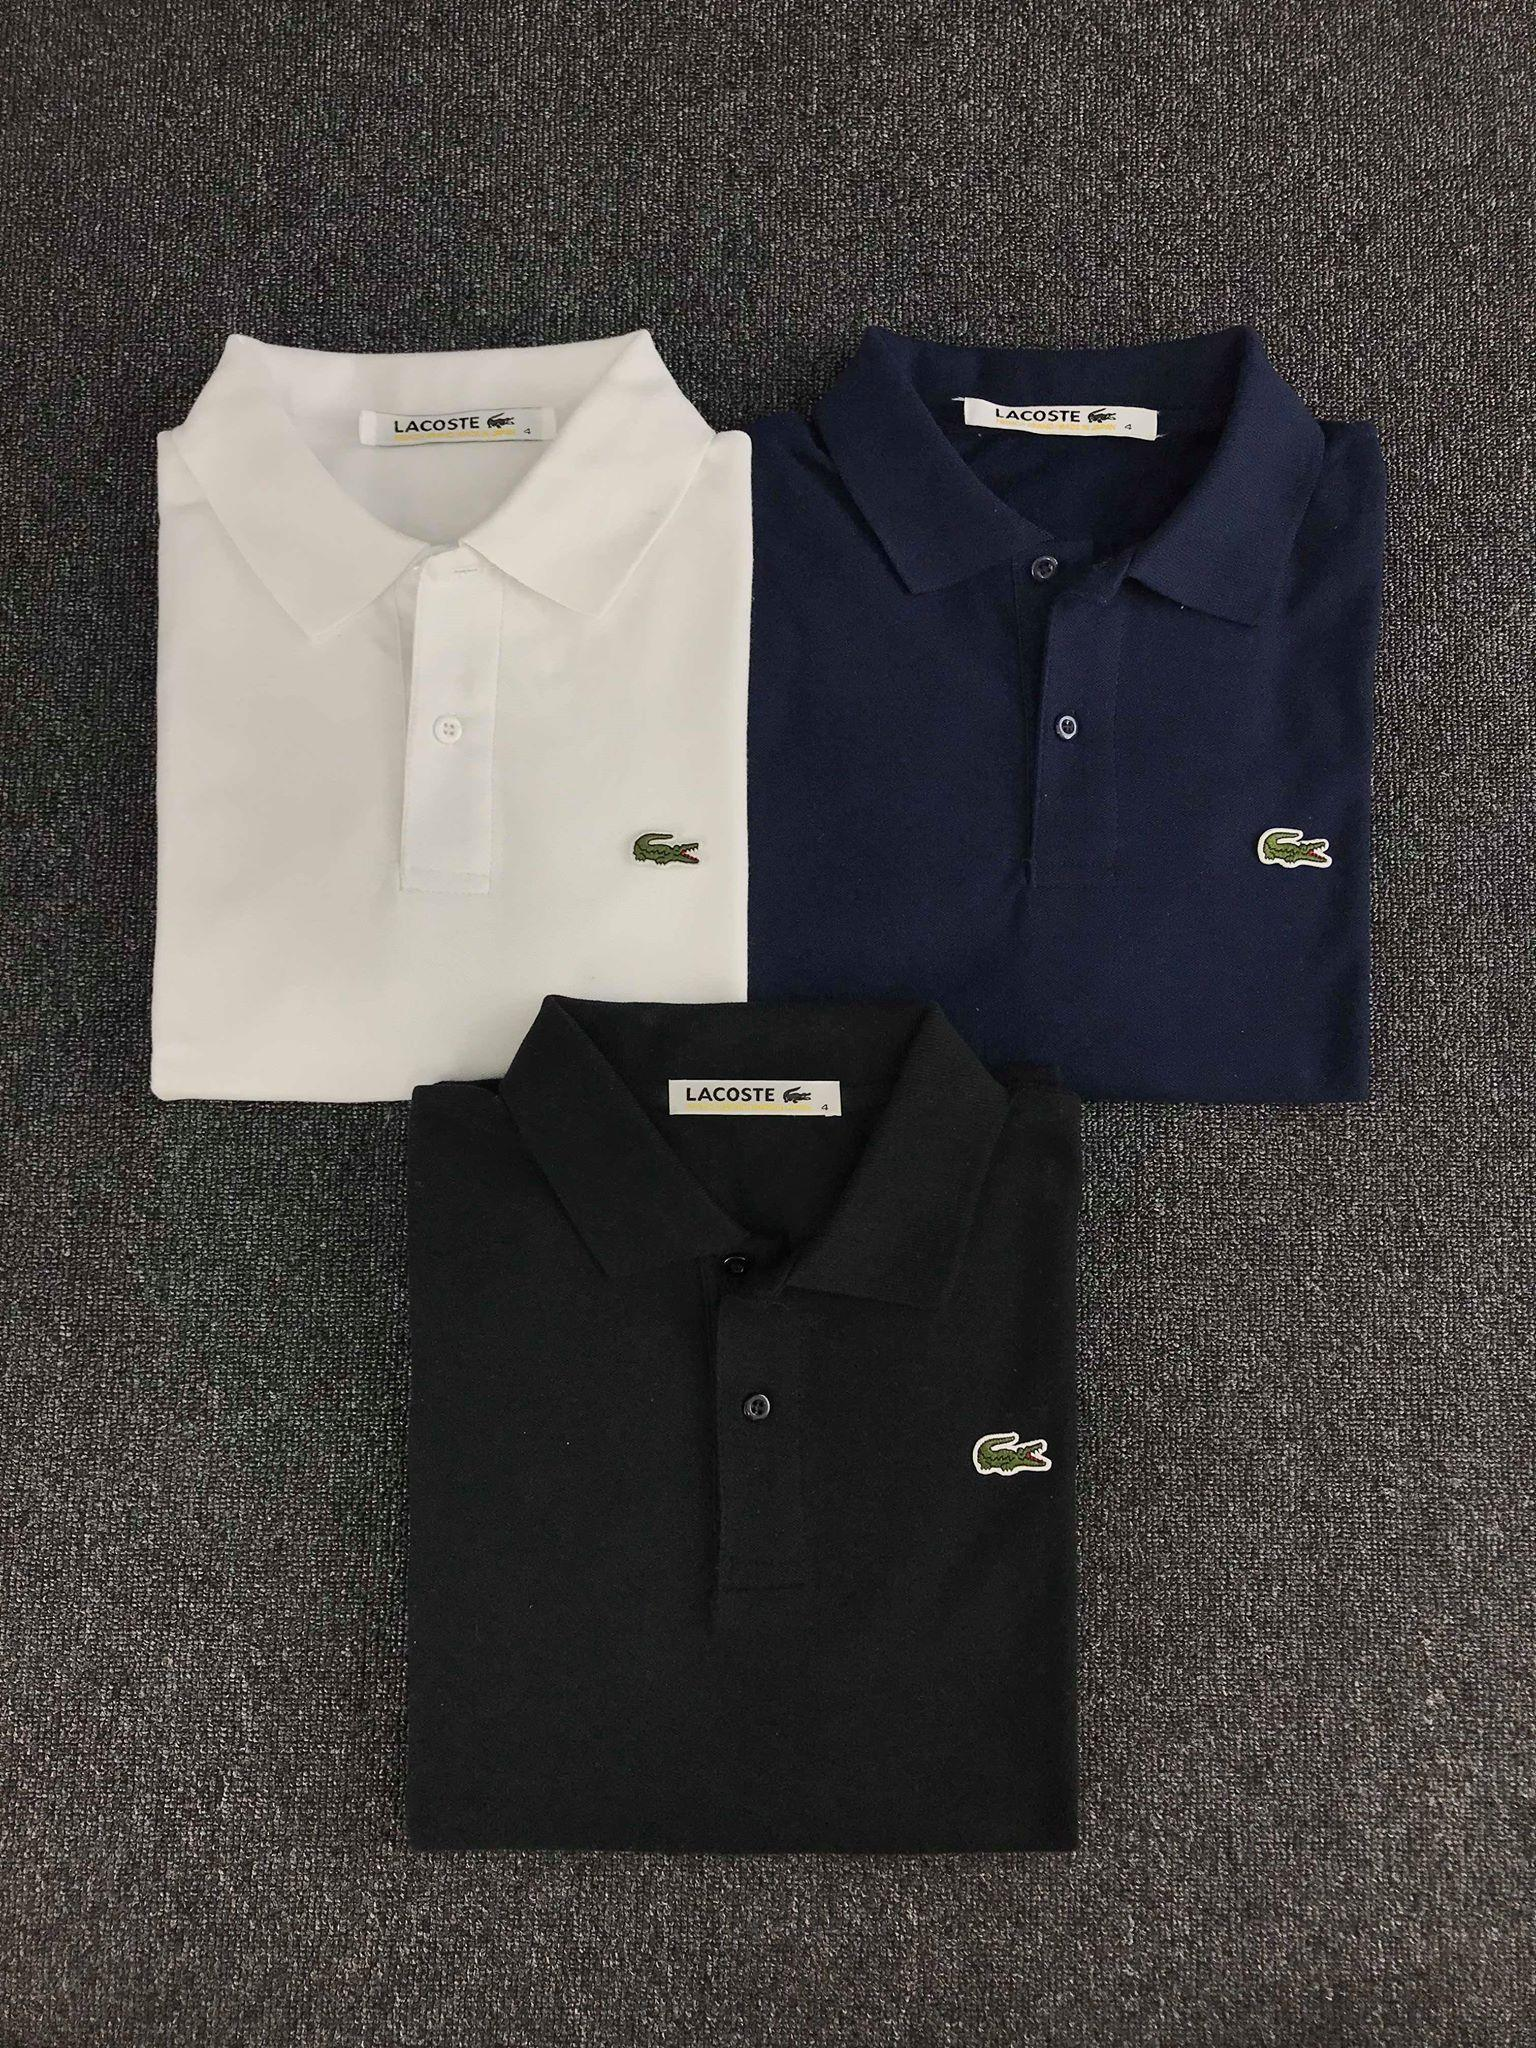 d16166871b Lacoste Philippines - Lacoste Polo for Men for sale - prices ...